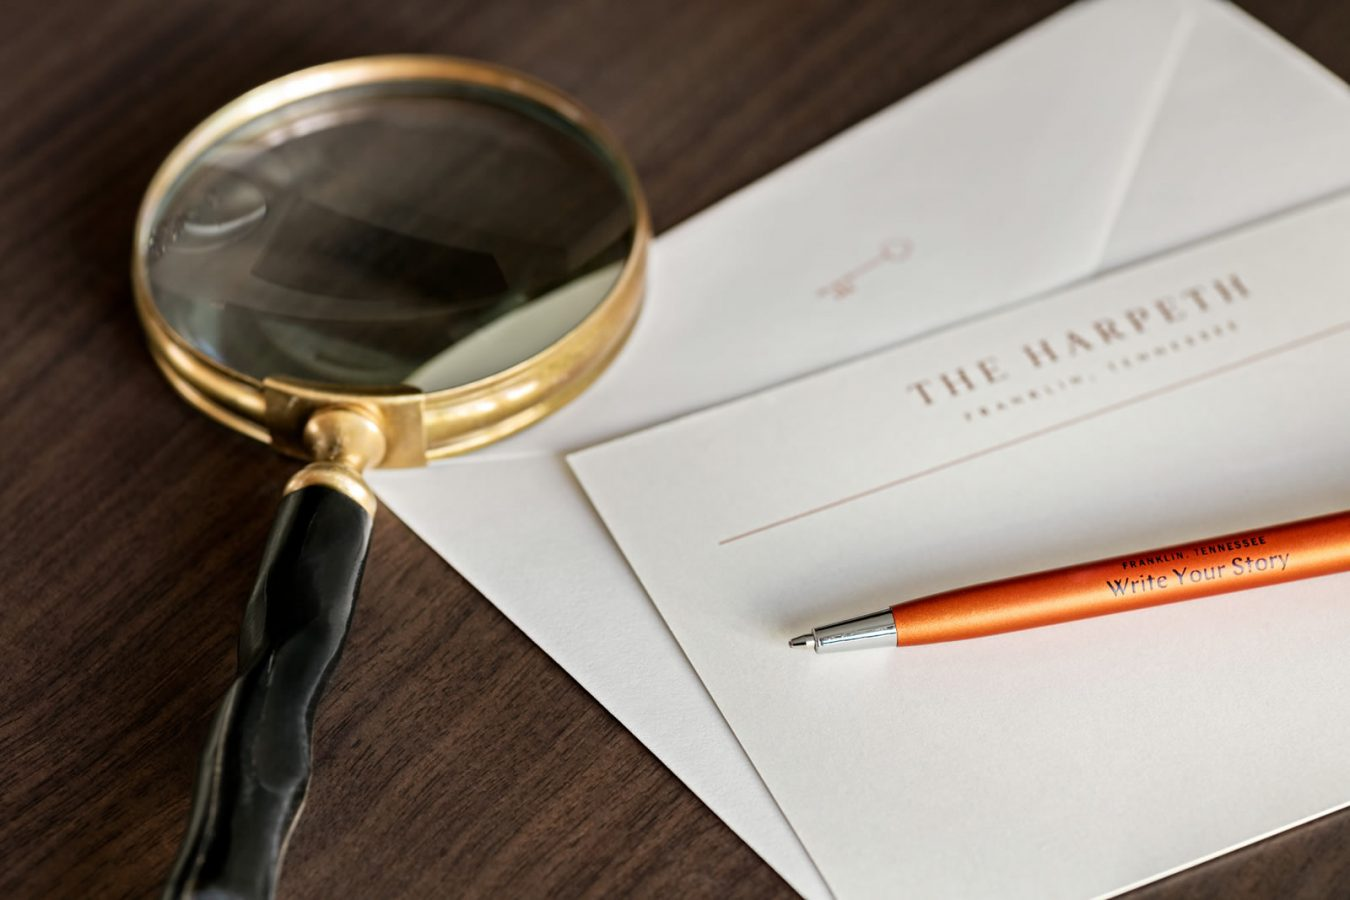 Magnifying glass, pen, and stationery